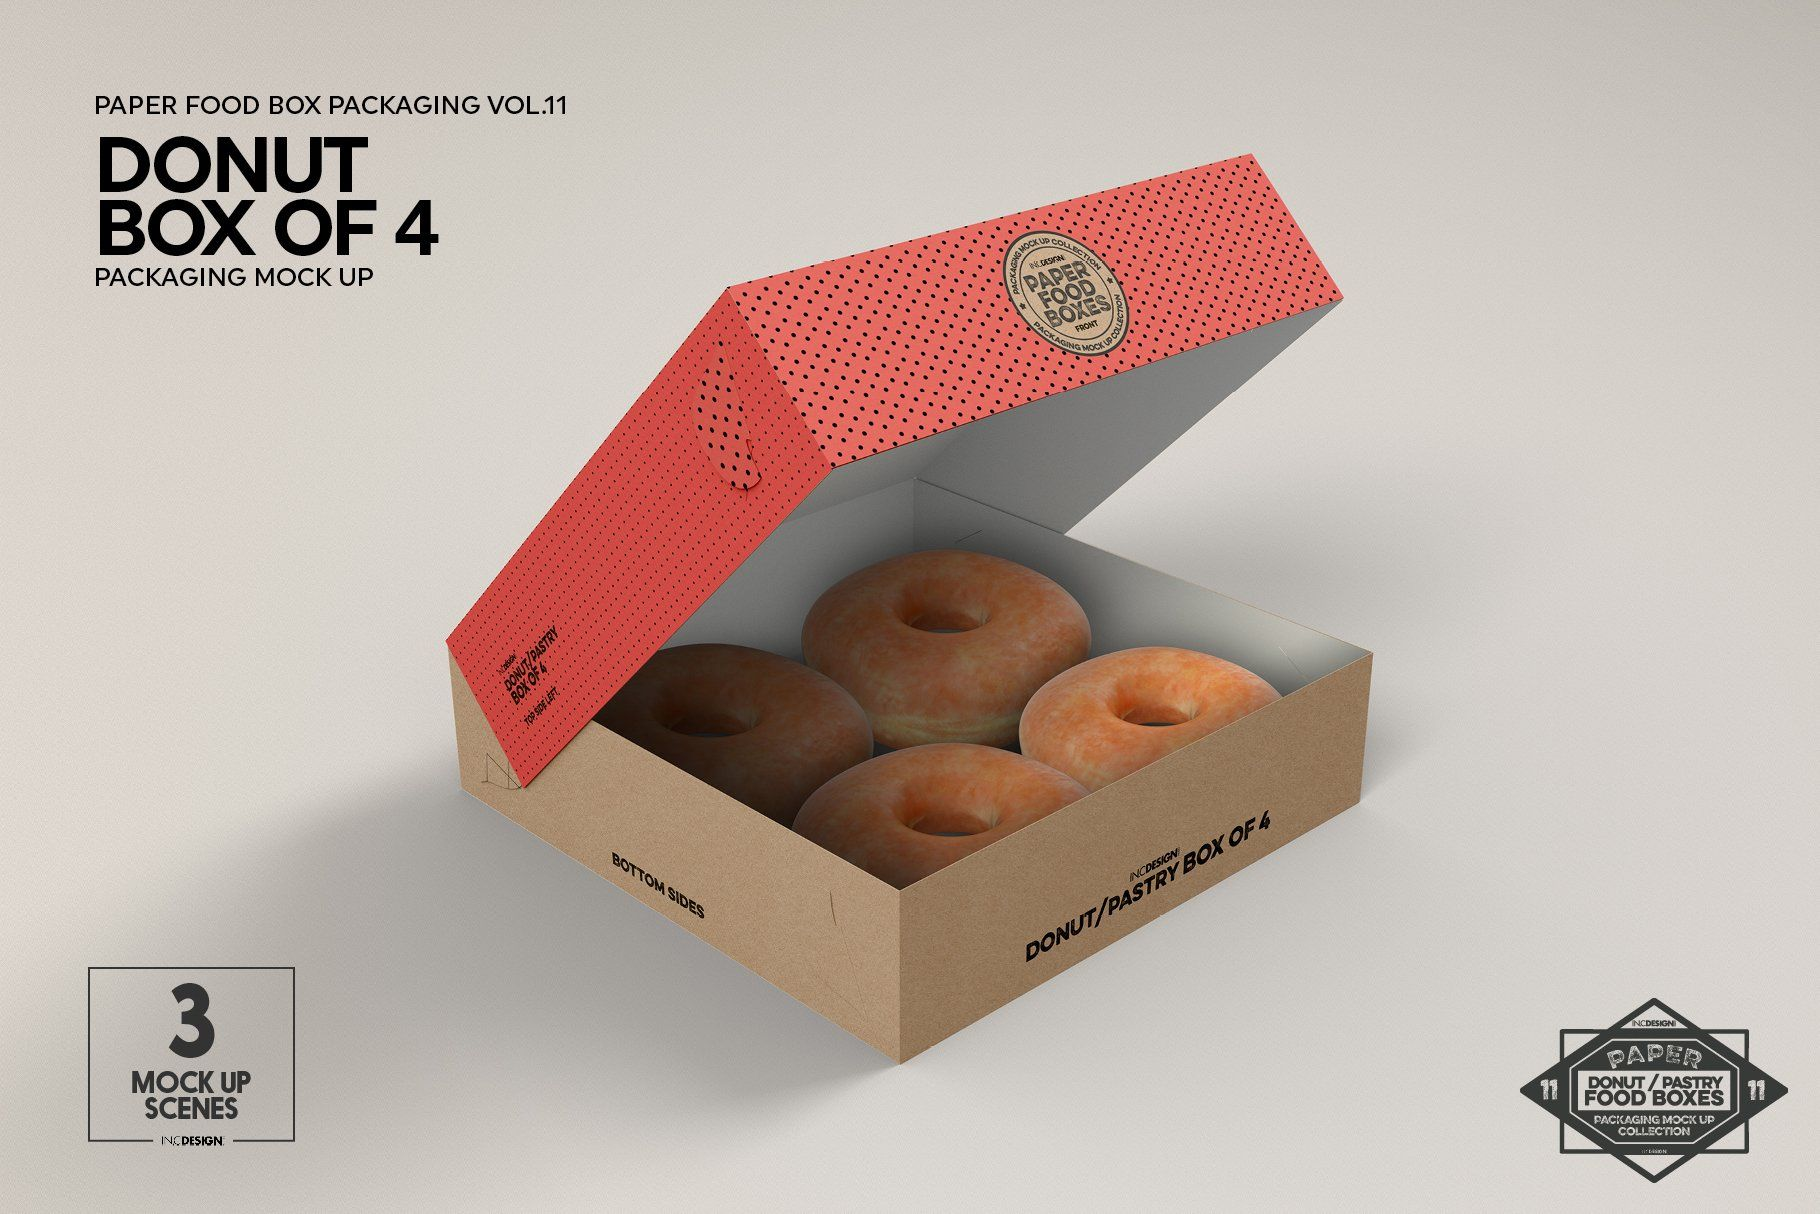 Download Box of Four Donut Pastry Box Mockup | Food box packaging ...